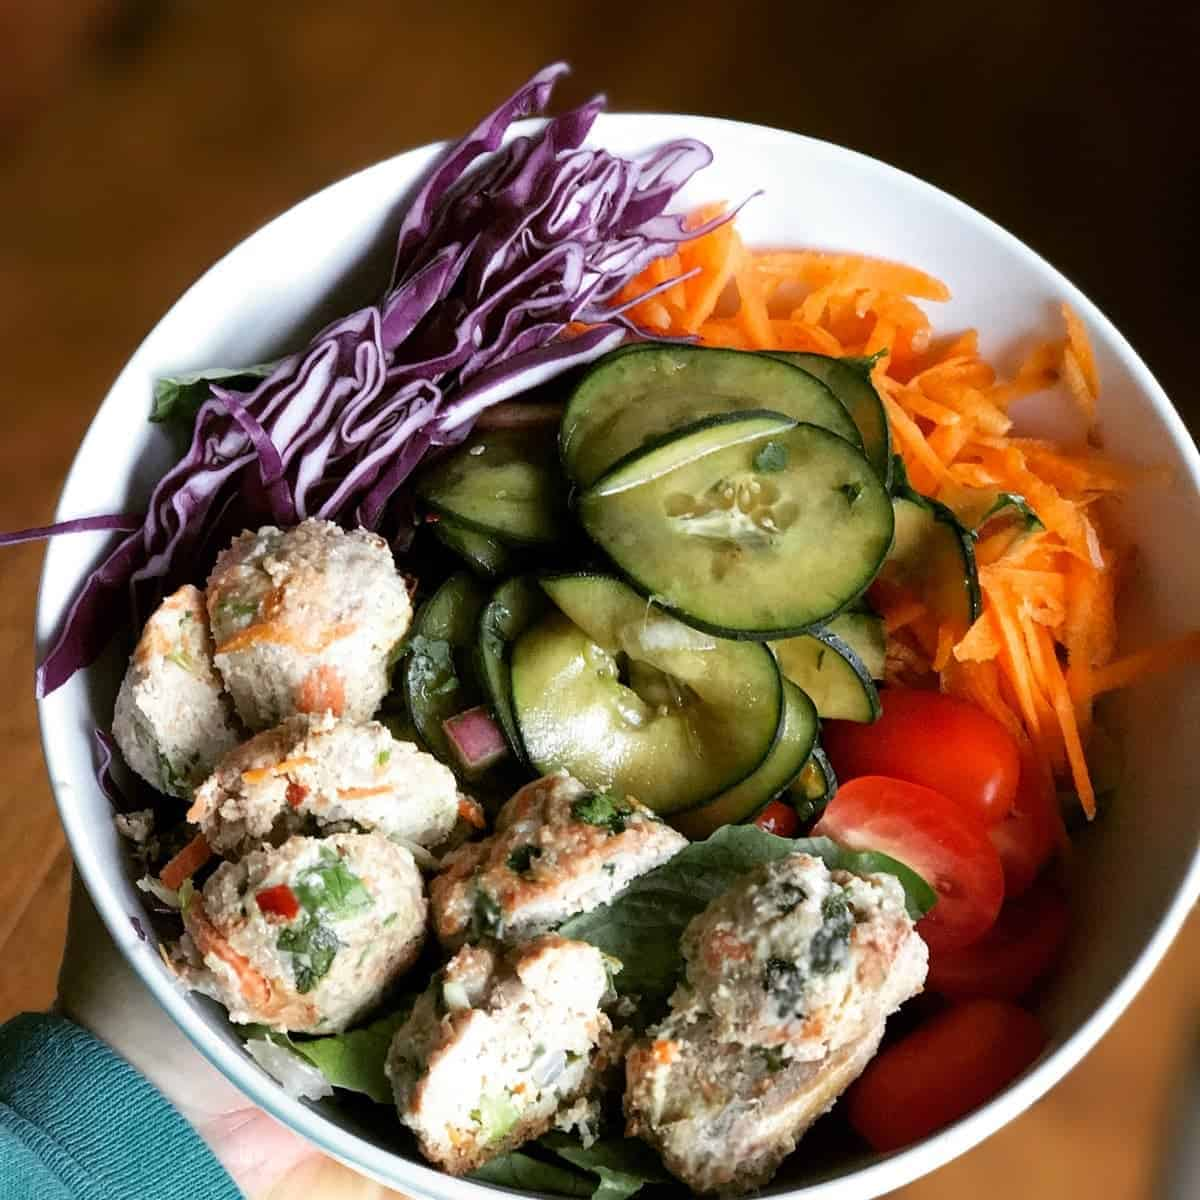 Thai Chicken Meatball Bowl recipe. high protein, low fat, and full of asian flavor. by foodology geek